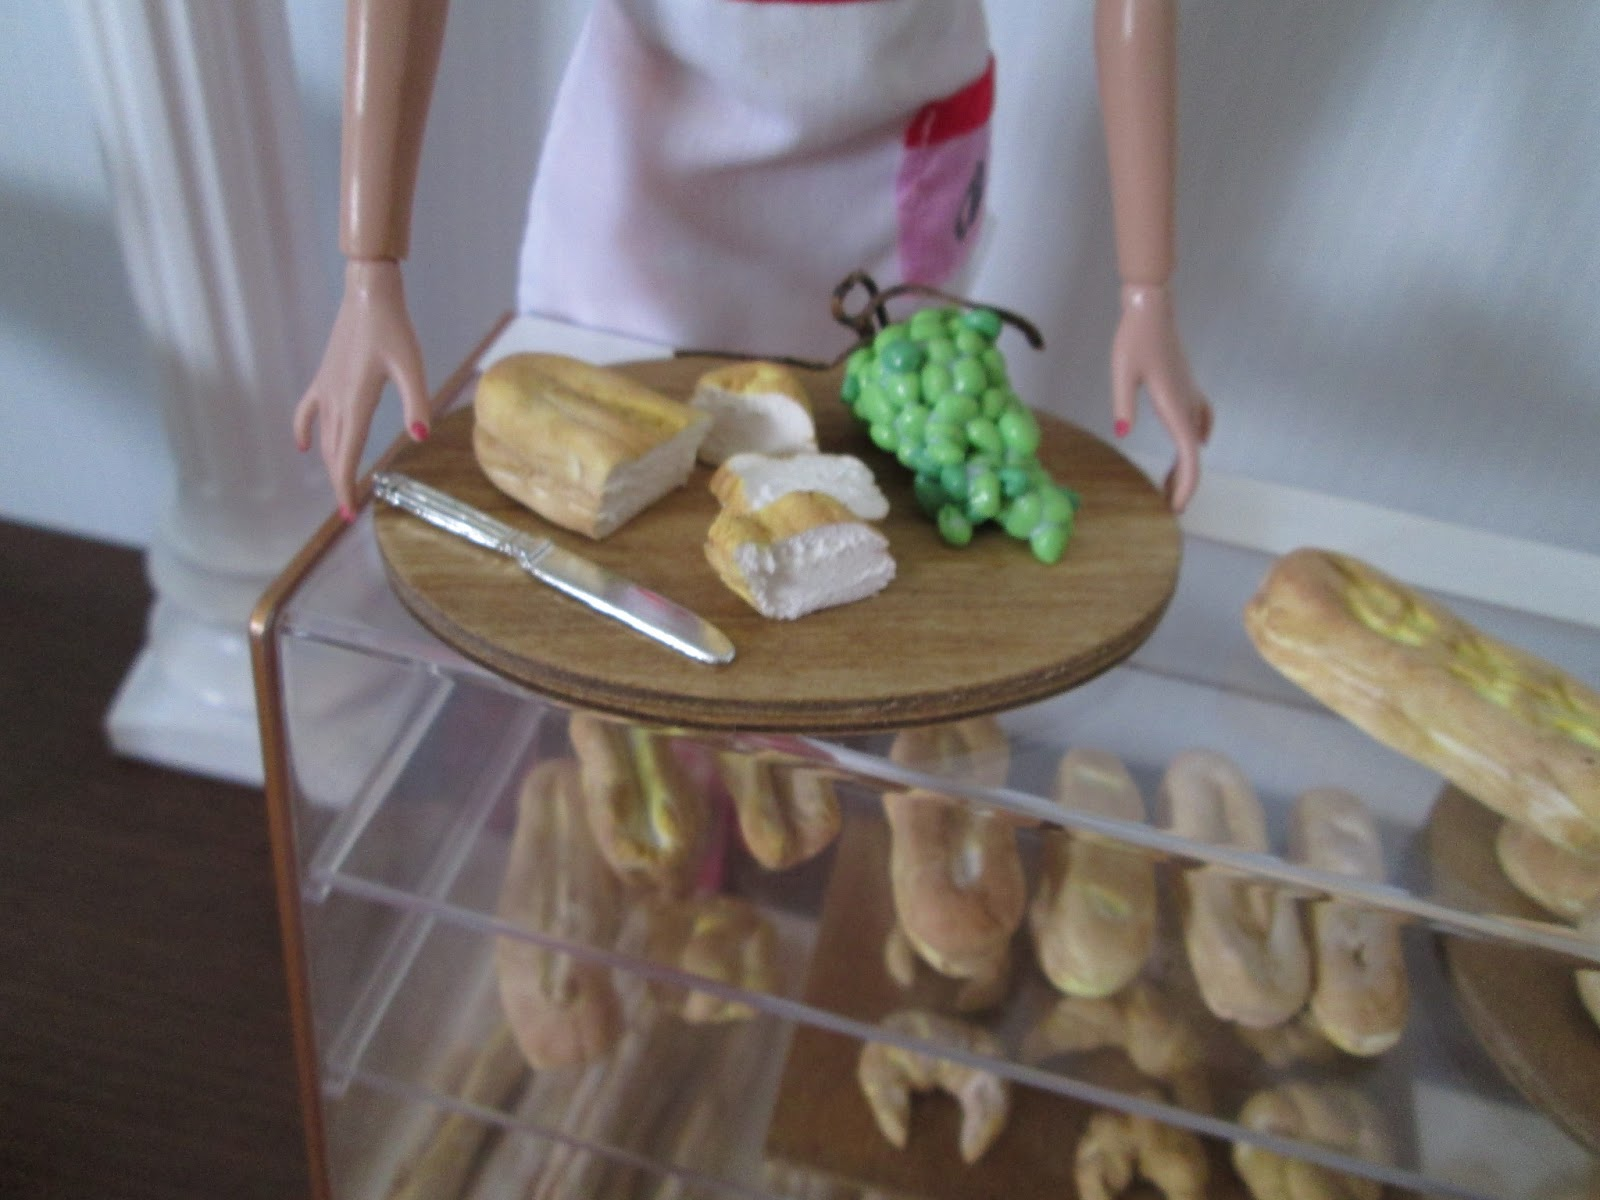 The One Sixth Scale Dollhouse More Miniature Food